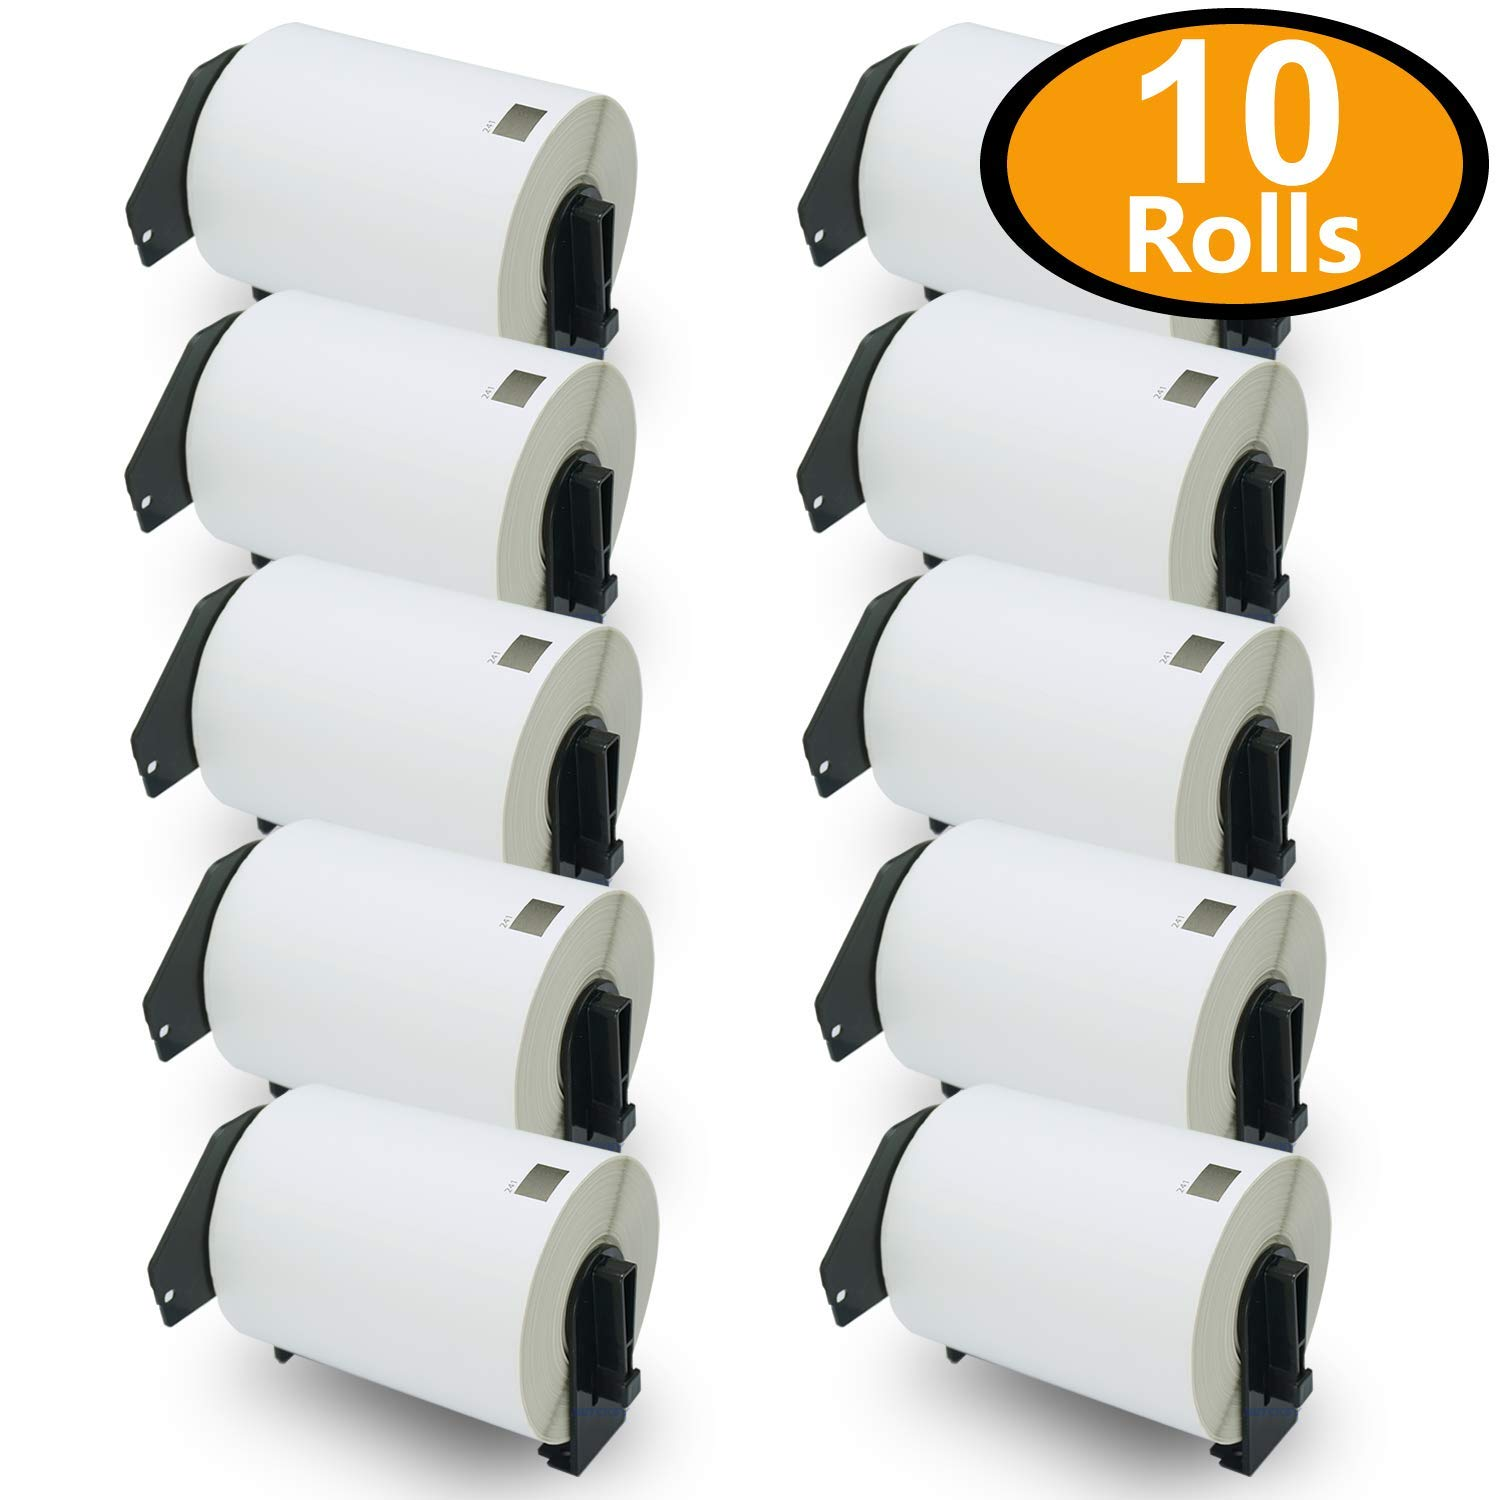 BETCKEY - 10 Rolls Compatible Brother DK-1241 Shipping Labels 101mm x 152mm(4'' x 6'')[2000 Labels With Refillable Cartridge Frame]